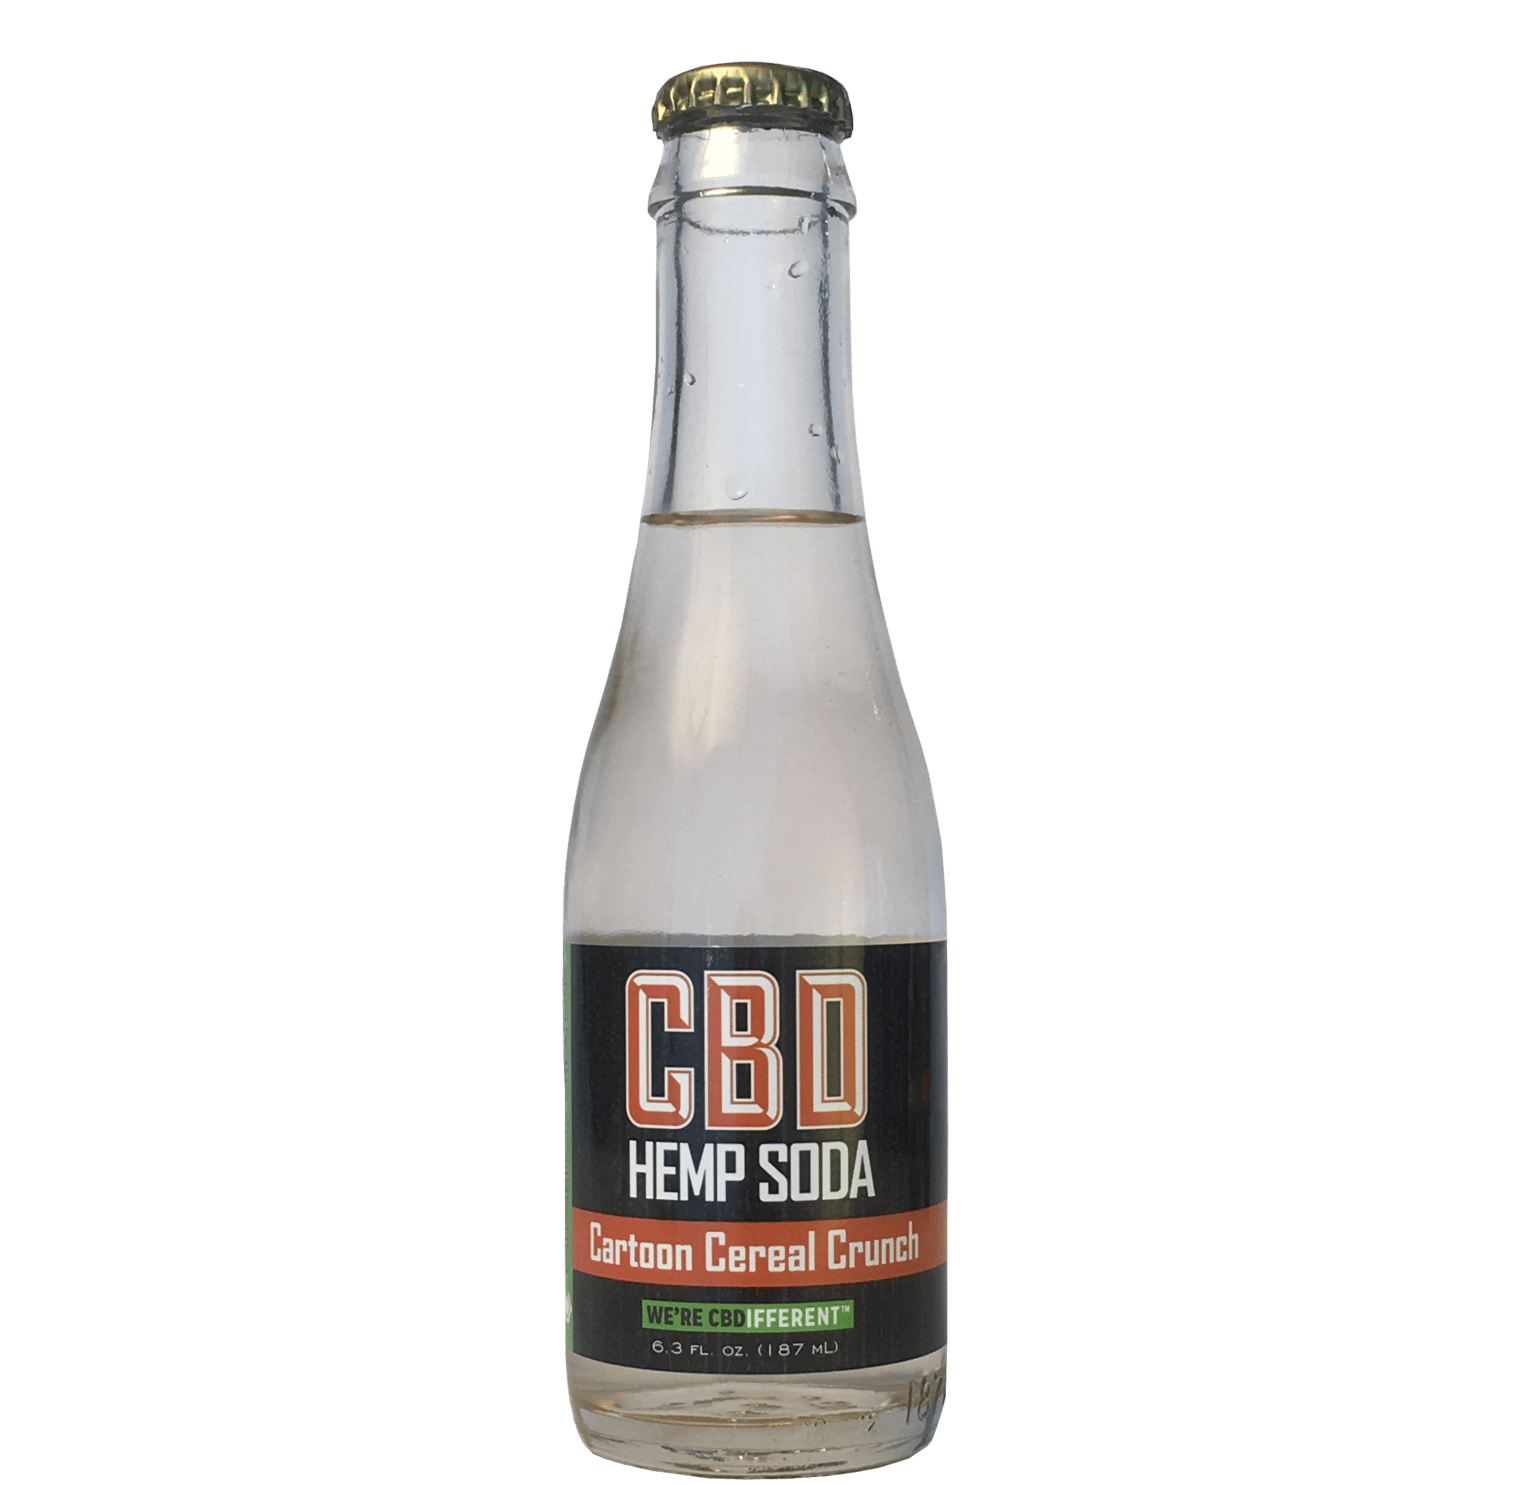 CBD Hemp Soda Cartoon Cereal Crunch